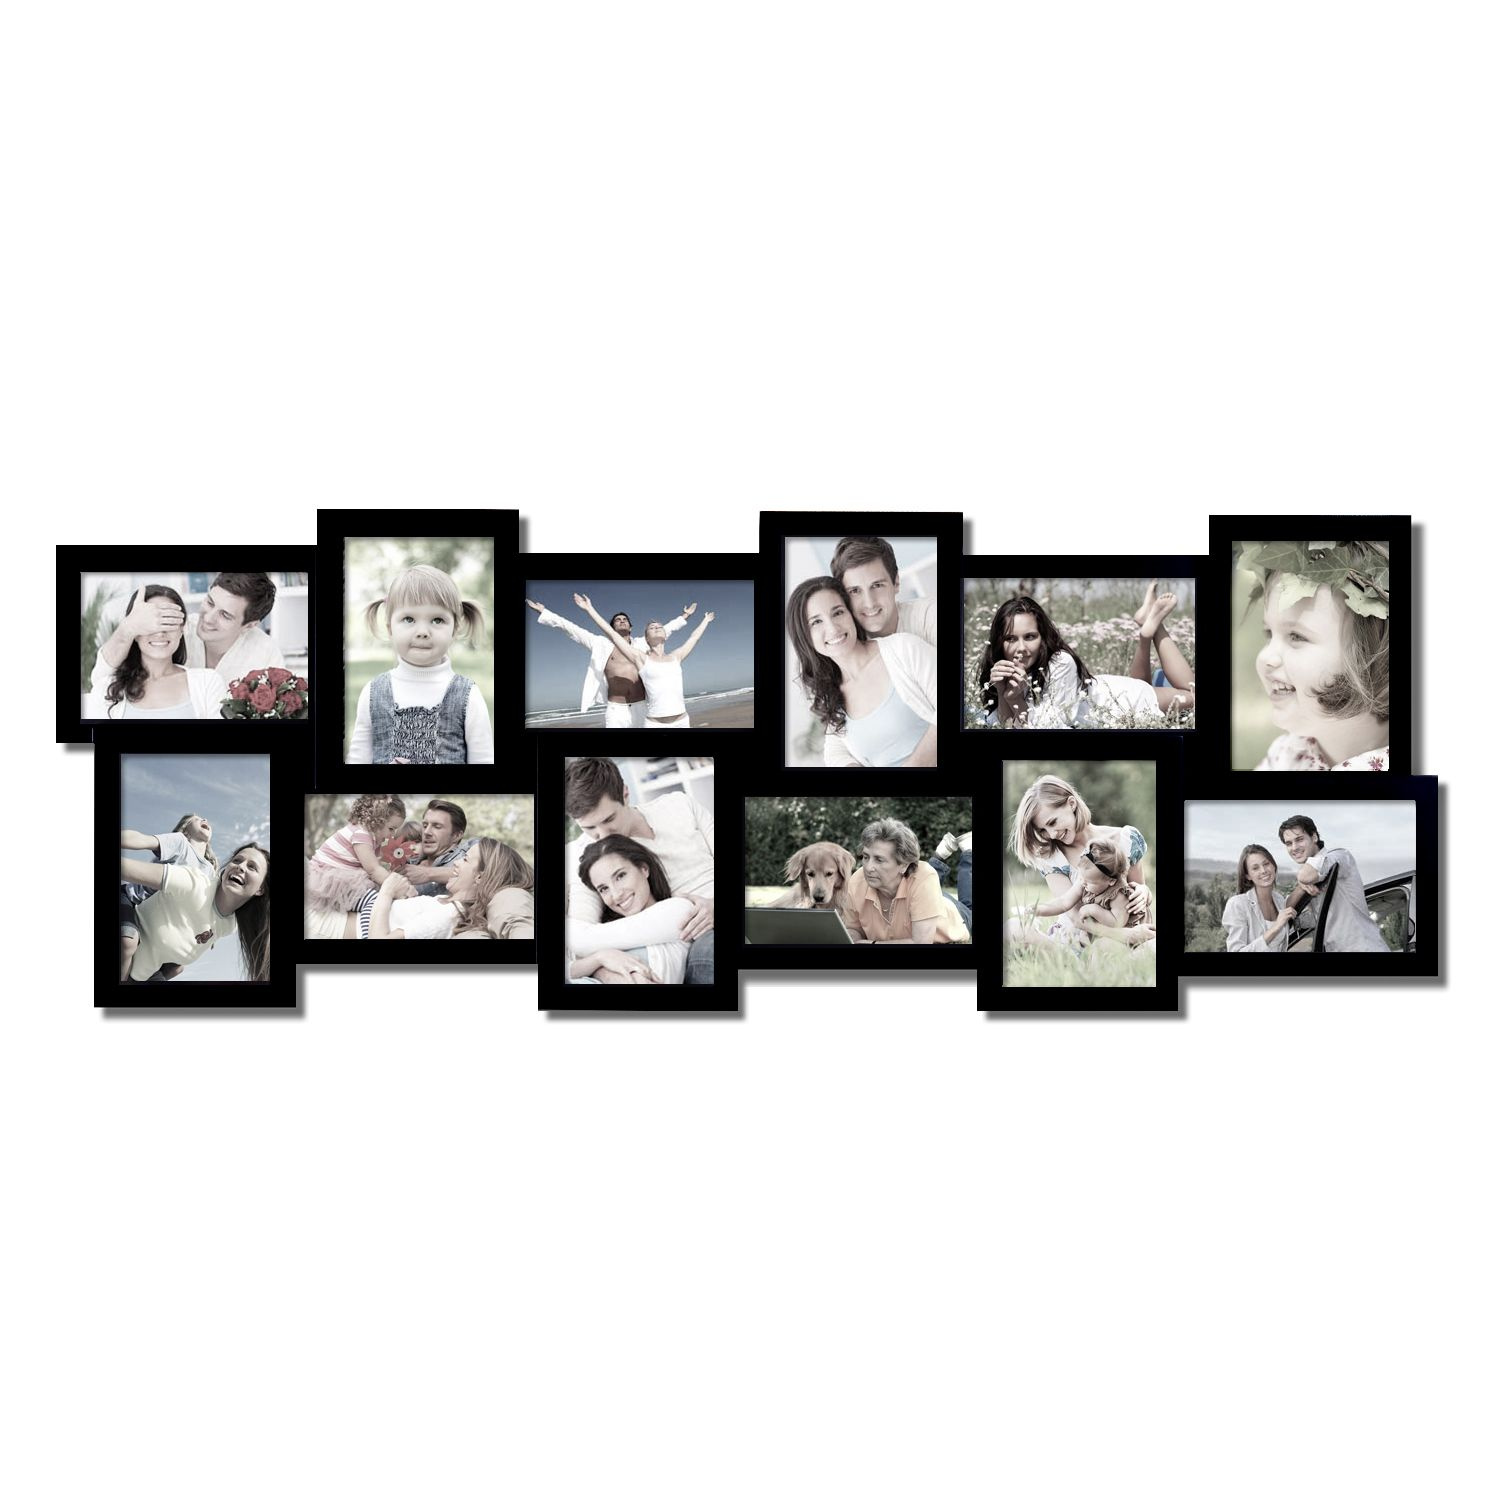 Adeco 12 Opening Collage Picture Frame Pf0198 Collage Picture Frames Wooden Wall Hangings Picture Collage